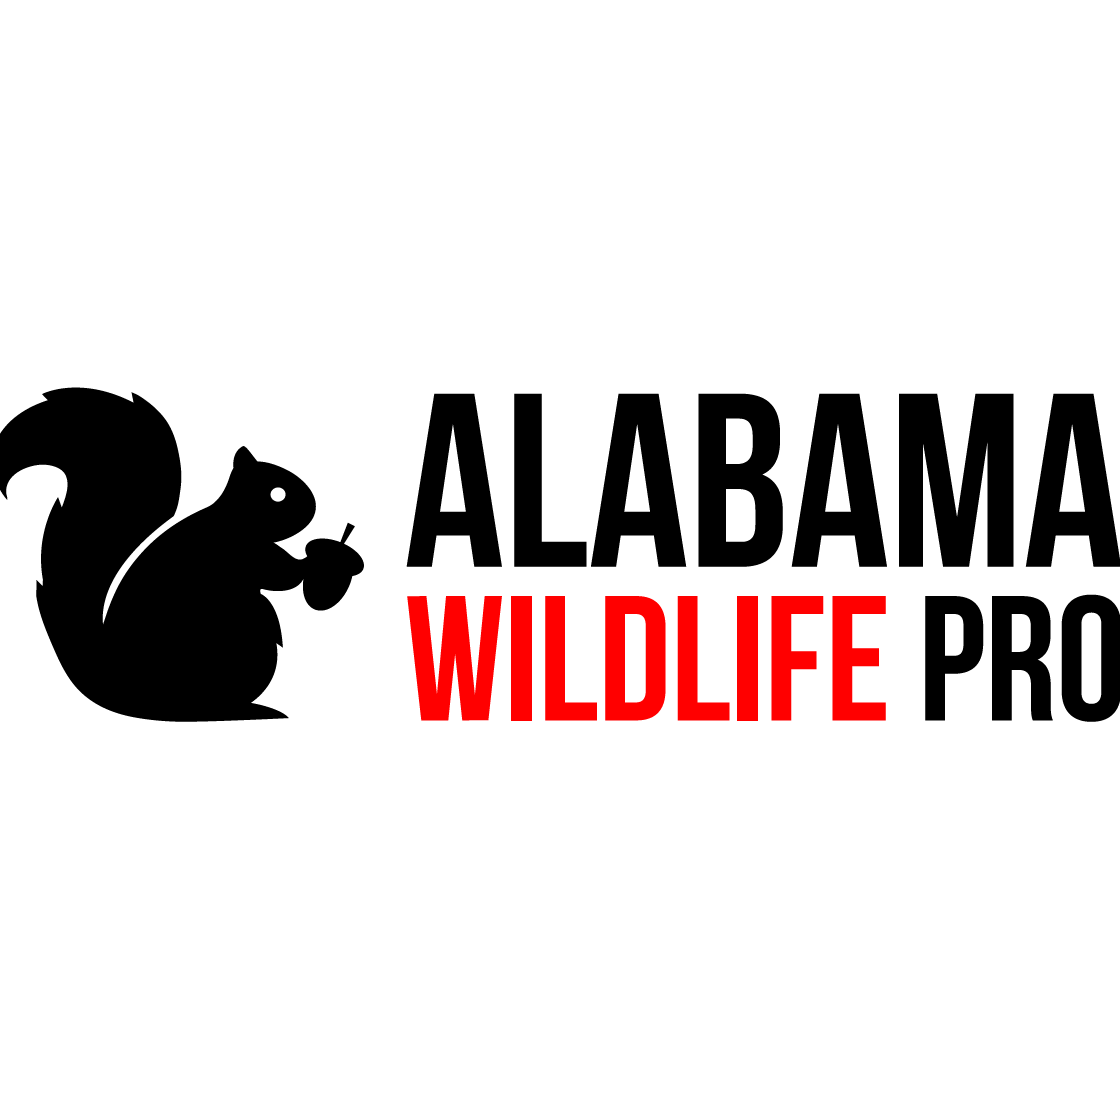 Alabama Wildlife Pros